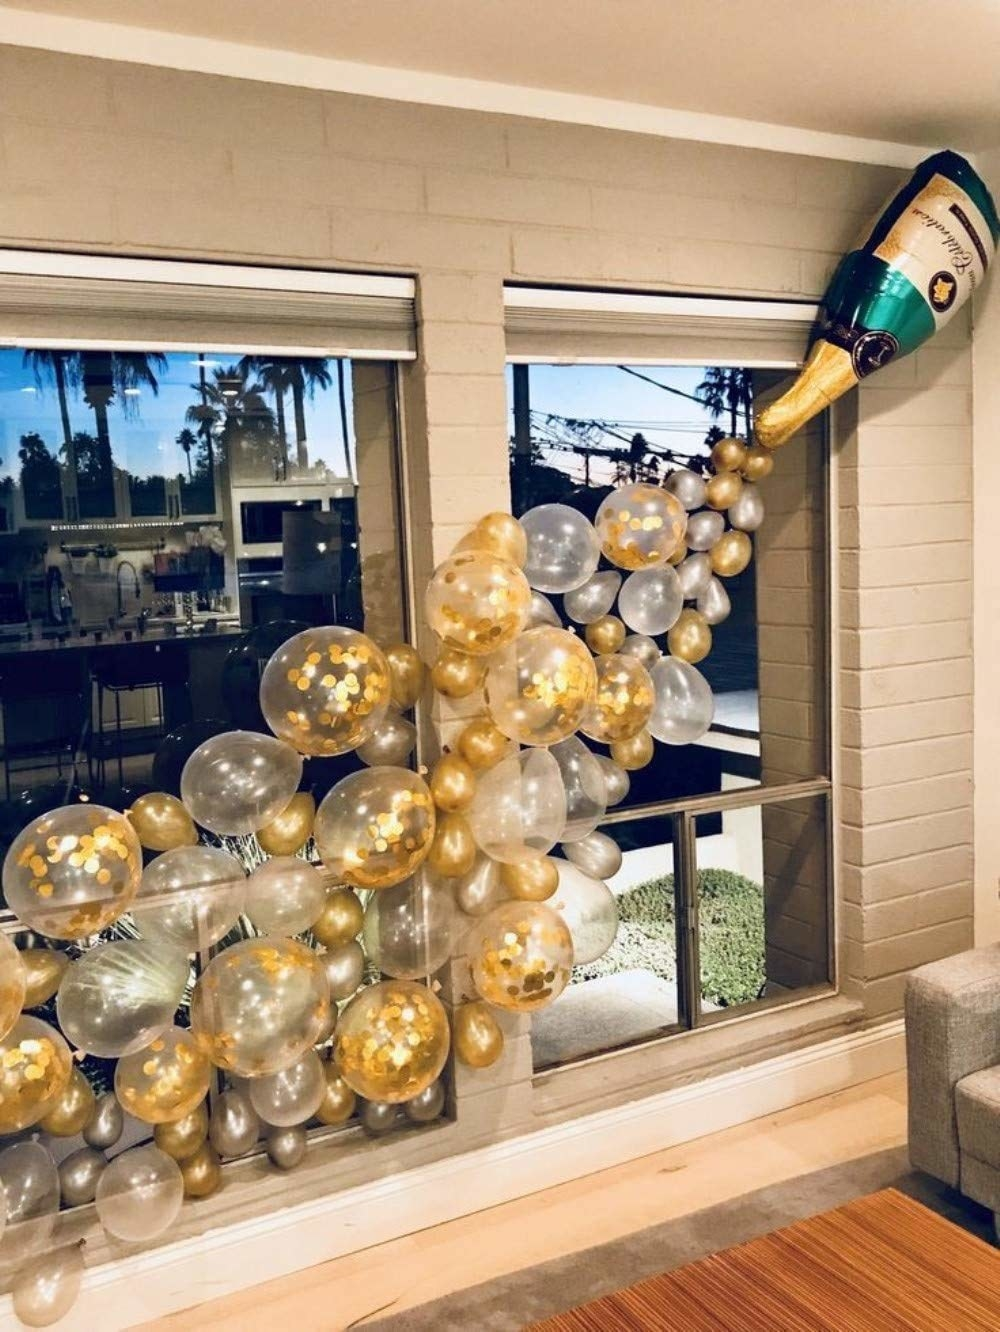 A champagne balloon with numerous smaller golden balloons coming out of it